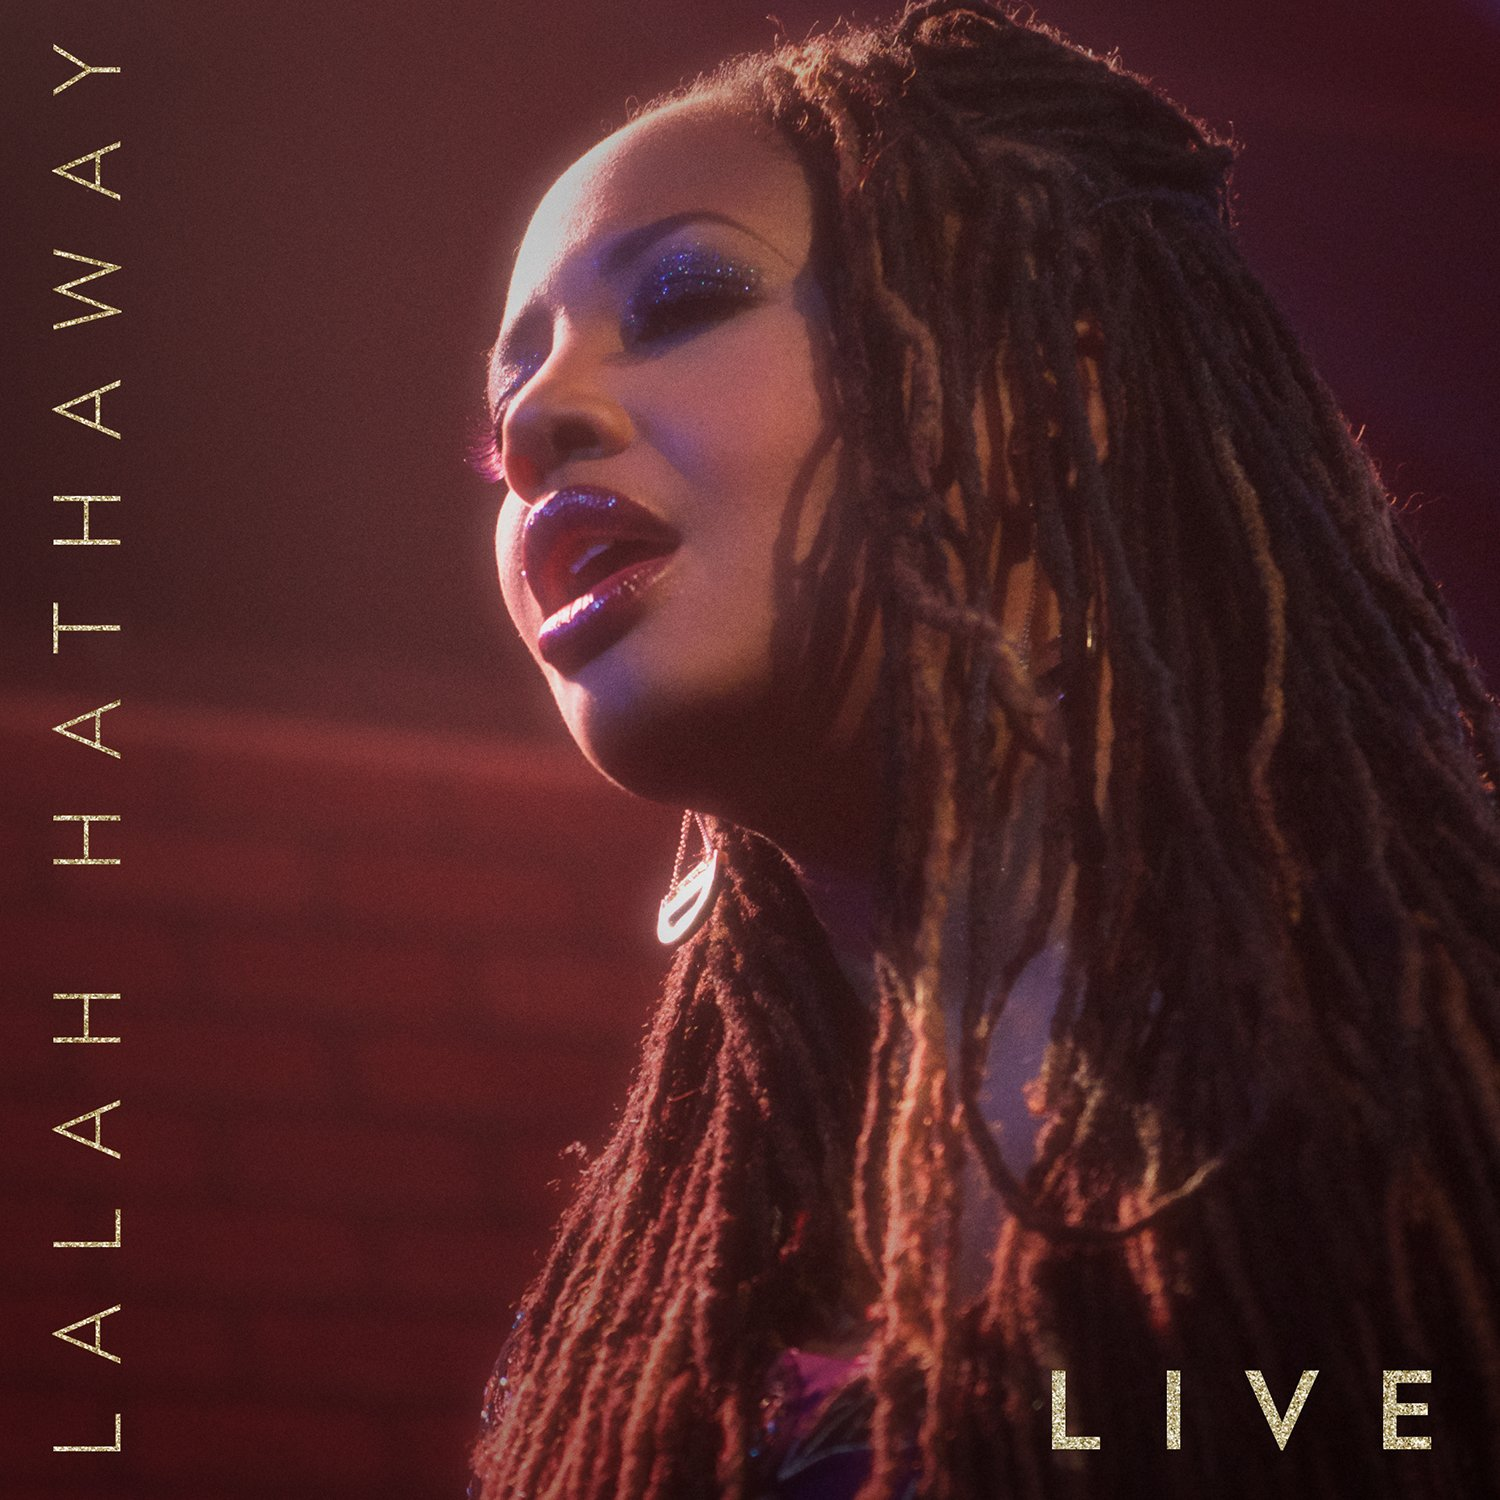 lalah hathaway when your life was low free mp3 download